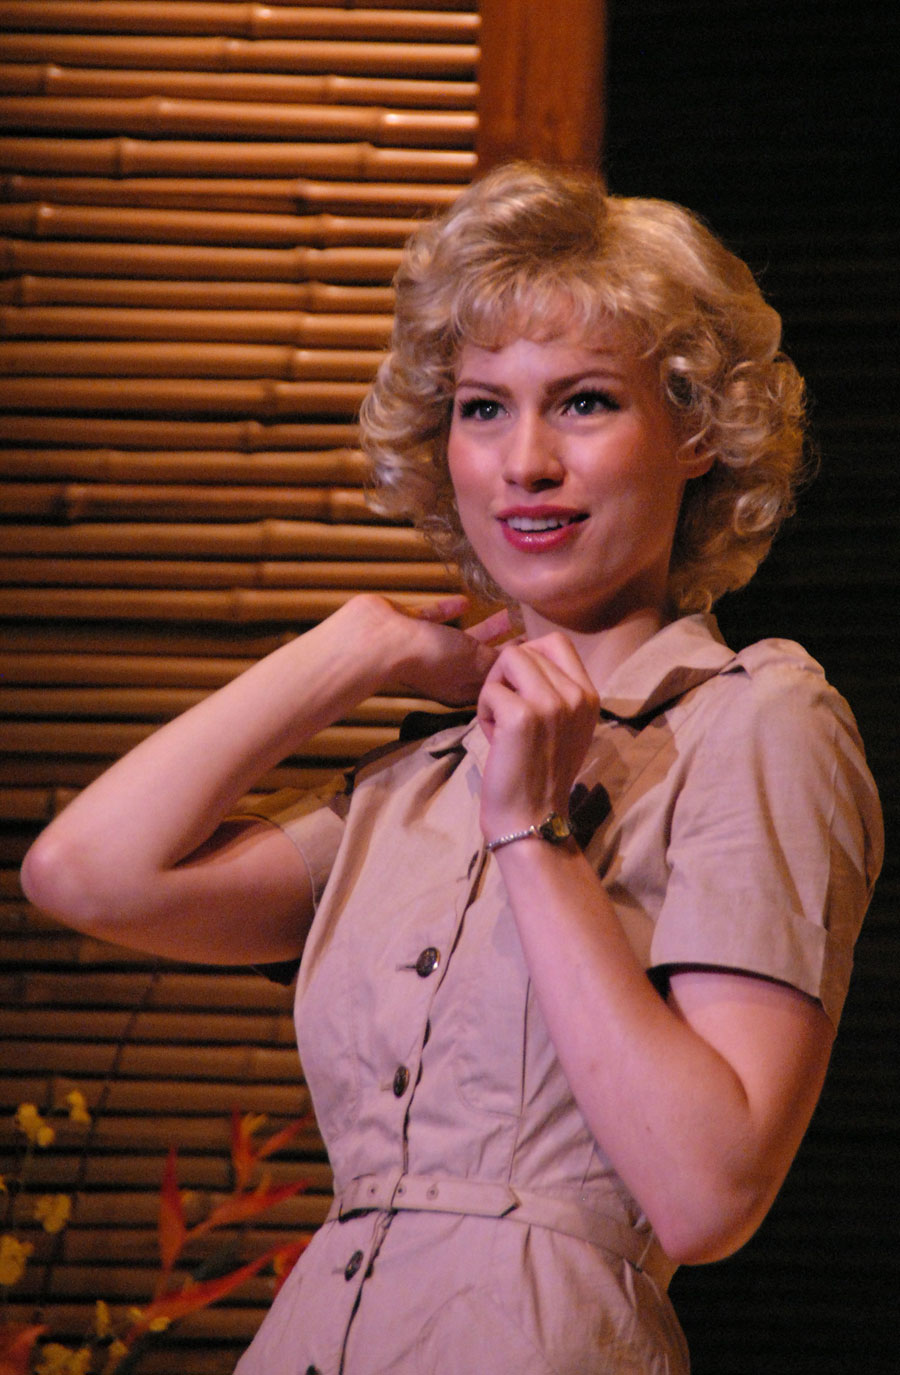 Stephanie K. Leppert in South Pacific at Lakewood Theatre Company, Sept 7 - Oct 14, 2012